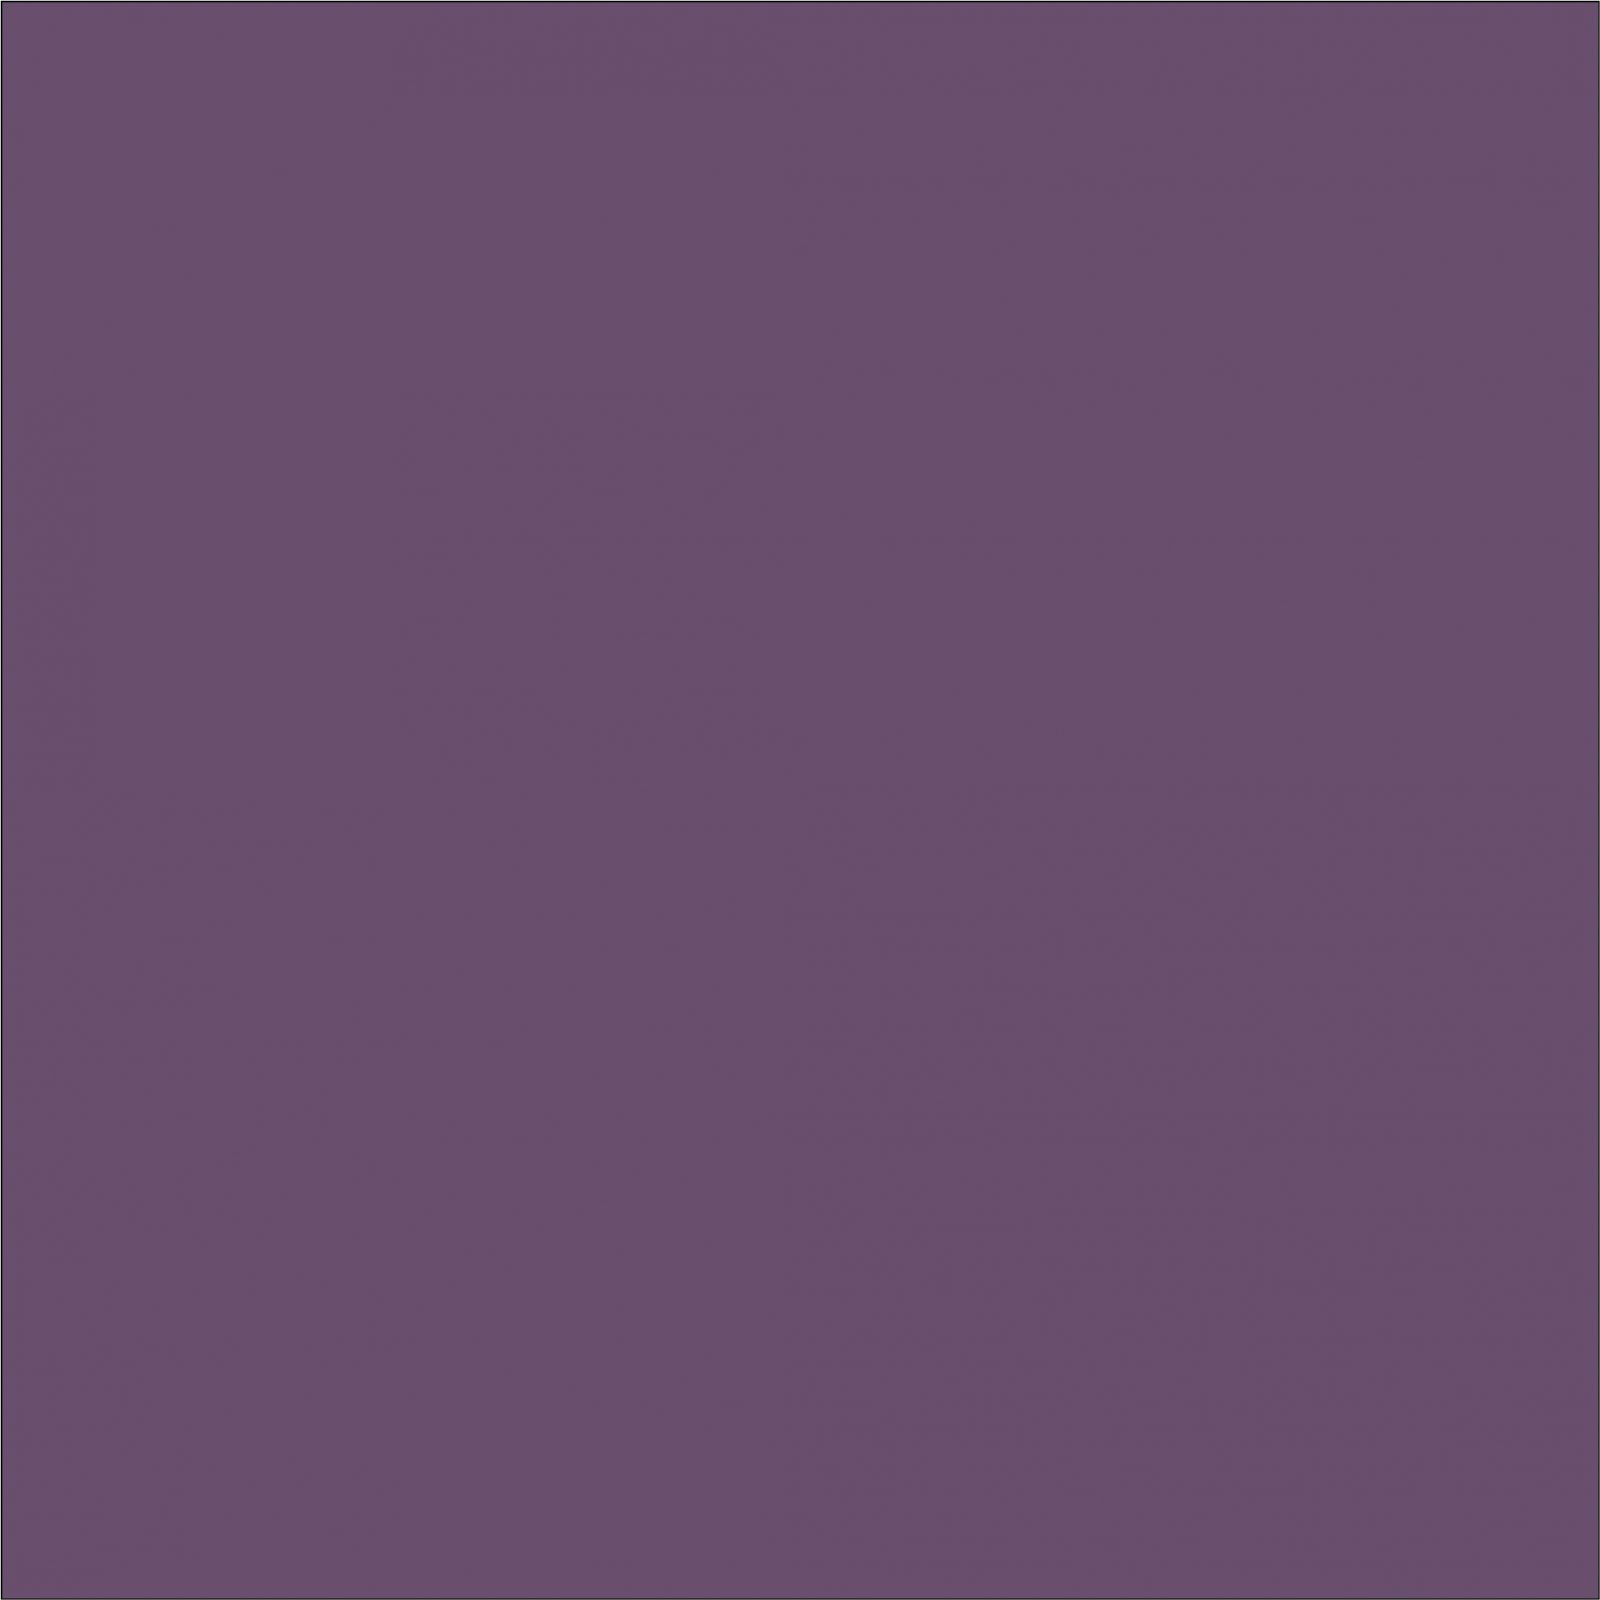 Colour swatch of Bright Purple